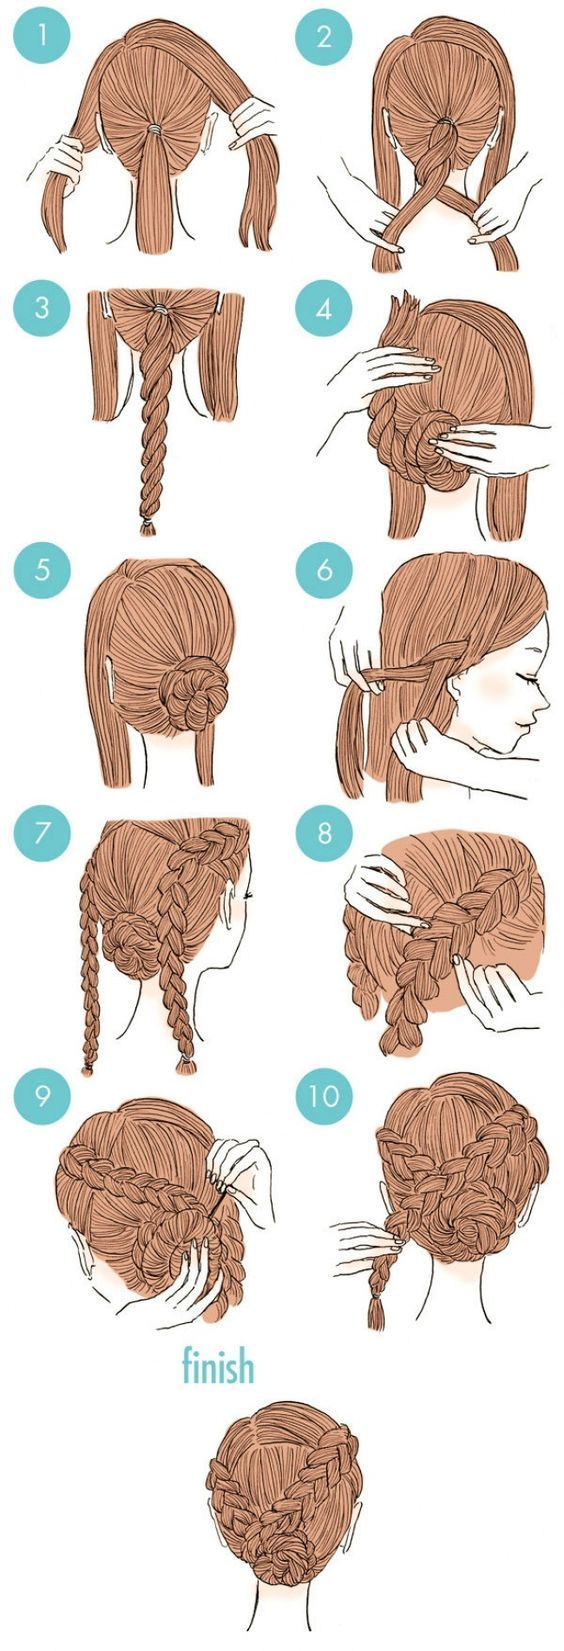 If you're feeling bored with your usual hairstyle but just don't want to go through all the expense and hassle of visiting the stylist, we have the perfect post for you. Japanese beauty site 'Kamimado' has compiled 20 super simple and conveniently quick hair styling ideas, each having an easy to follow pictured step-by-step tutorial. There's sure to be something here to suit everyone! Check them out!